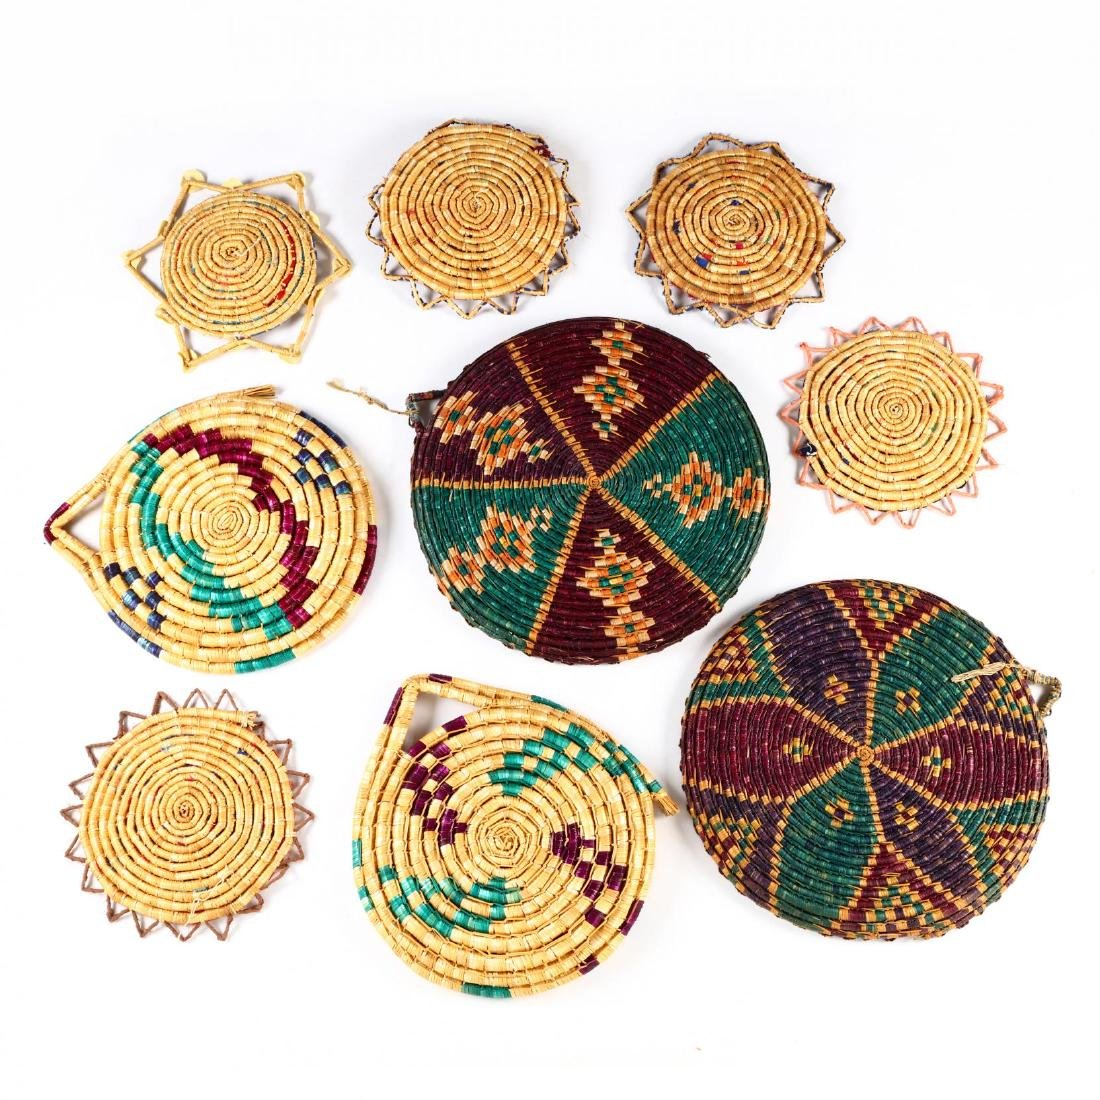 Group of Decorative Cypriot Serving Baskets - 6